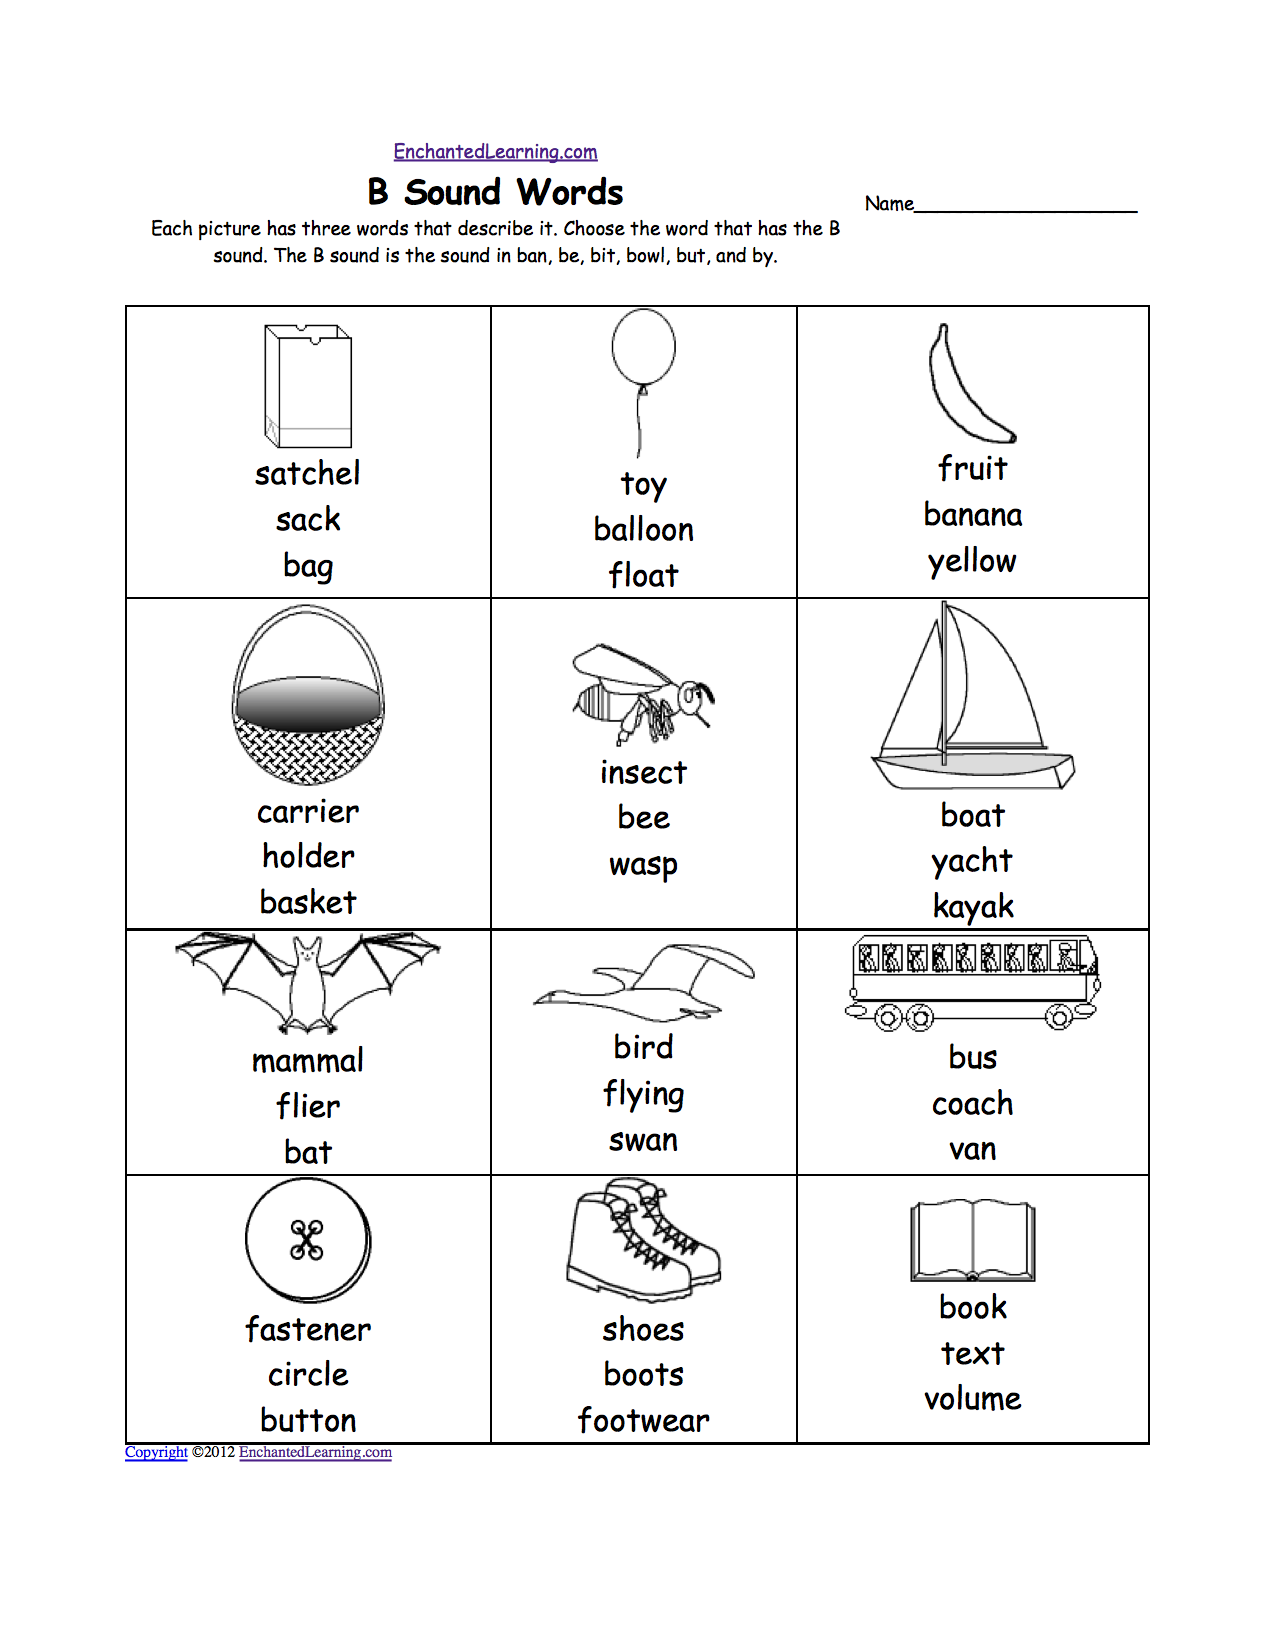 Aldiablosus  Fascinating Phonics Worksheets Multiple Choice Worksheets To Print  With Interesting Quotbquot Sound Phonics Worksheet Multiple Choice Each Picture Has Three Words That Describe It Choose The Word That Has A Quotbquot Sound The Quotbquot Sound Is The Sound  With Beautiful Ight Worksheets Also Math Worksheets For Kindergarten And First Grade In Addition Free Printable Matching Worksheets And Types Of Chemical Reactions Worksheets As Well As Worksheets For Th Grade Science Additionally Rate Conversion Worksheet From Enchantedlearningcom With Aldiablosus  Interesting Phonics Worksheets Multiple Choice Worksheets To Print  With Beautiful Quotbquot Sound Phonics Worksheet Multiple Choice Each Picture Has Three Words That Describe It Choose The Word That Has A Quotbquot Sound The Quotbquot Sound Is The Sound  And Fascinating Ight Worksheets Also Math Worksheets For Kindergarten And First Grade In Addition Free Printable Matching Worksheets From Enchantedlearningcom